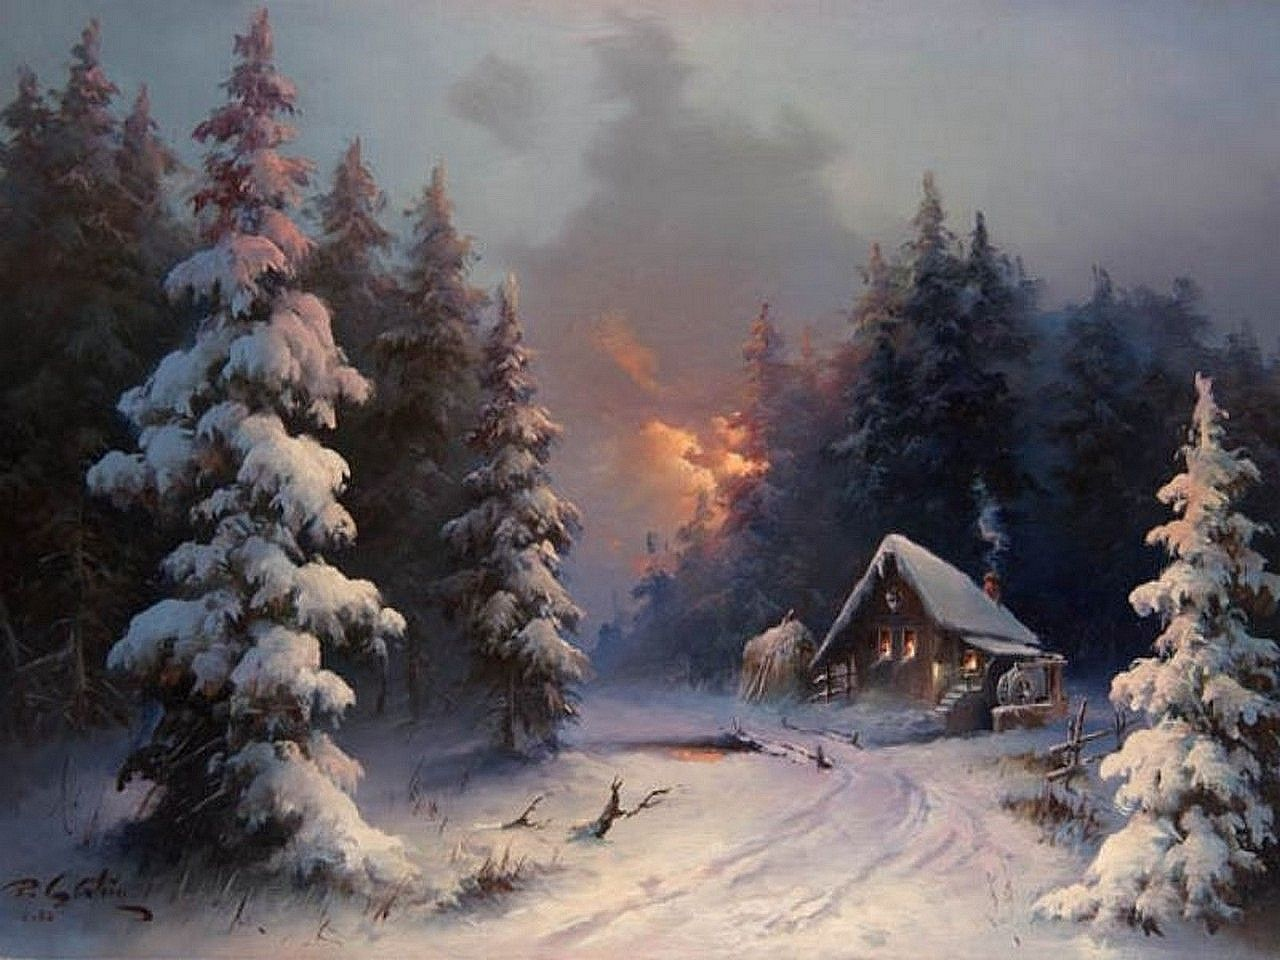 Winter Painting Winter Landscape Painting Snow